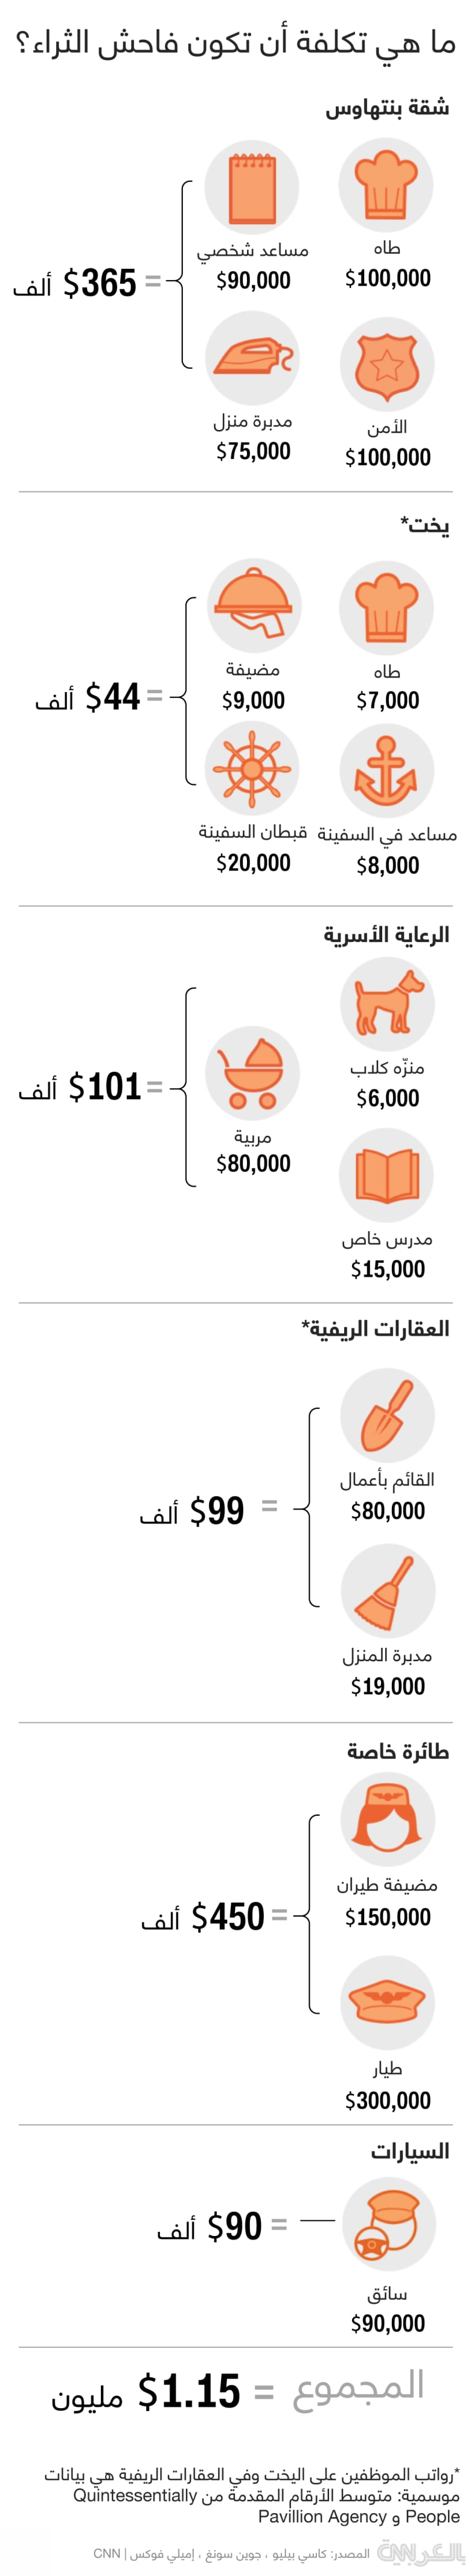 Cost-of-being-super-rich-infographic